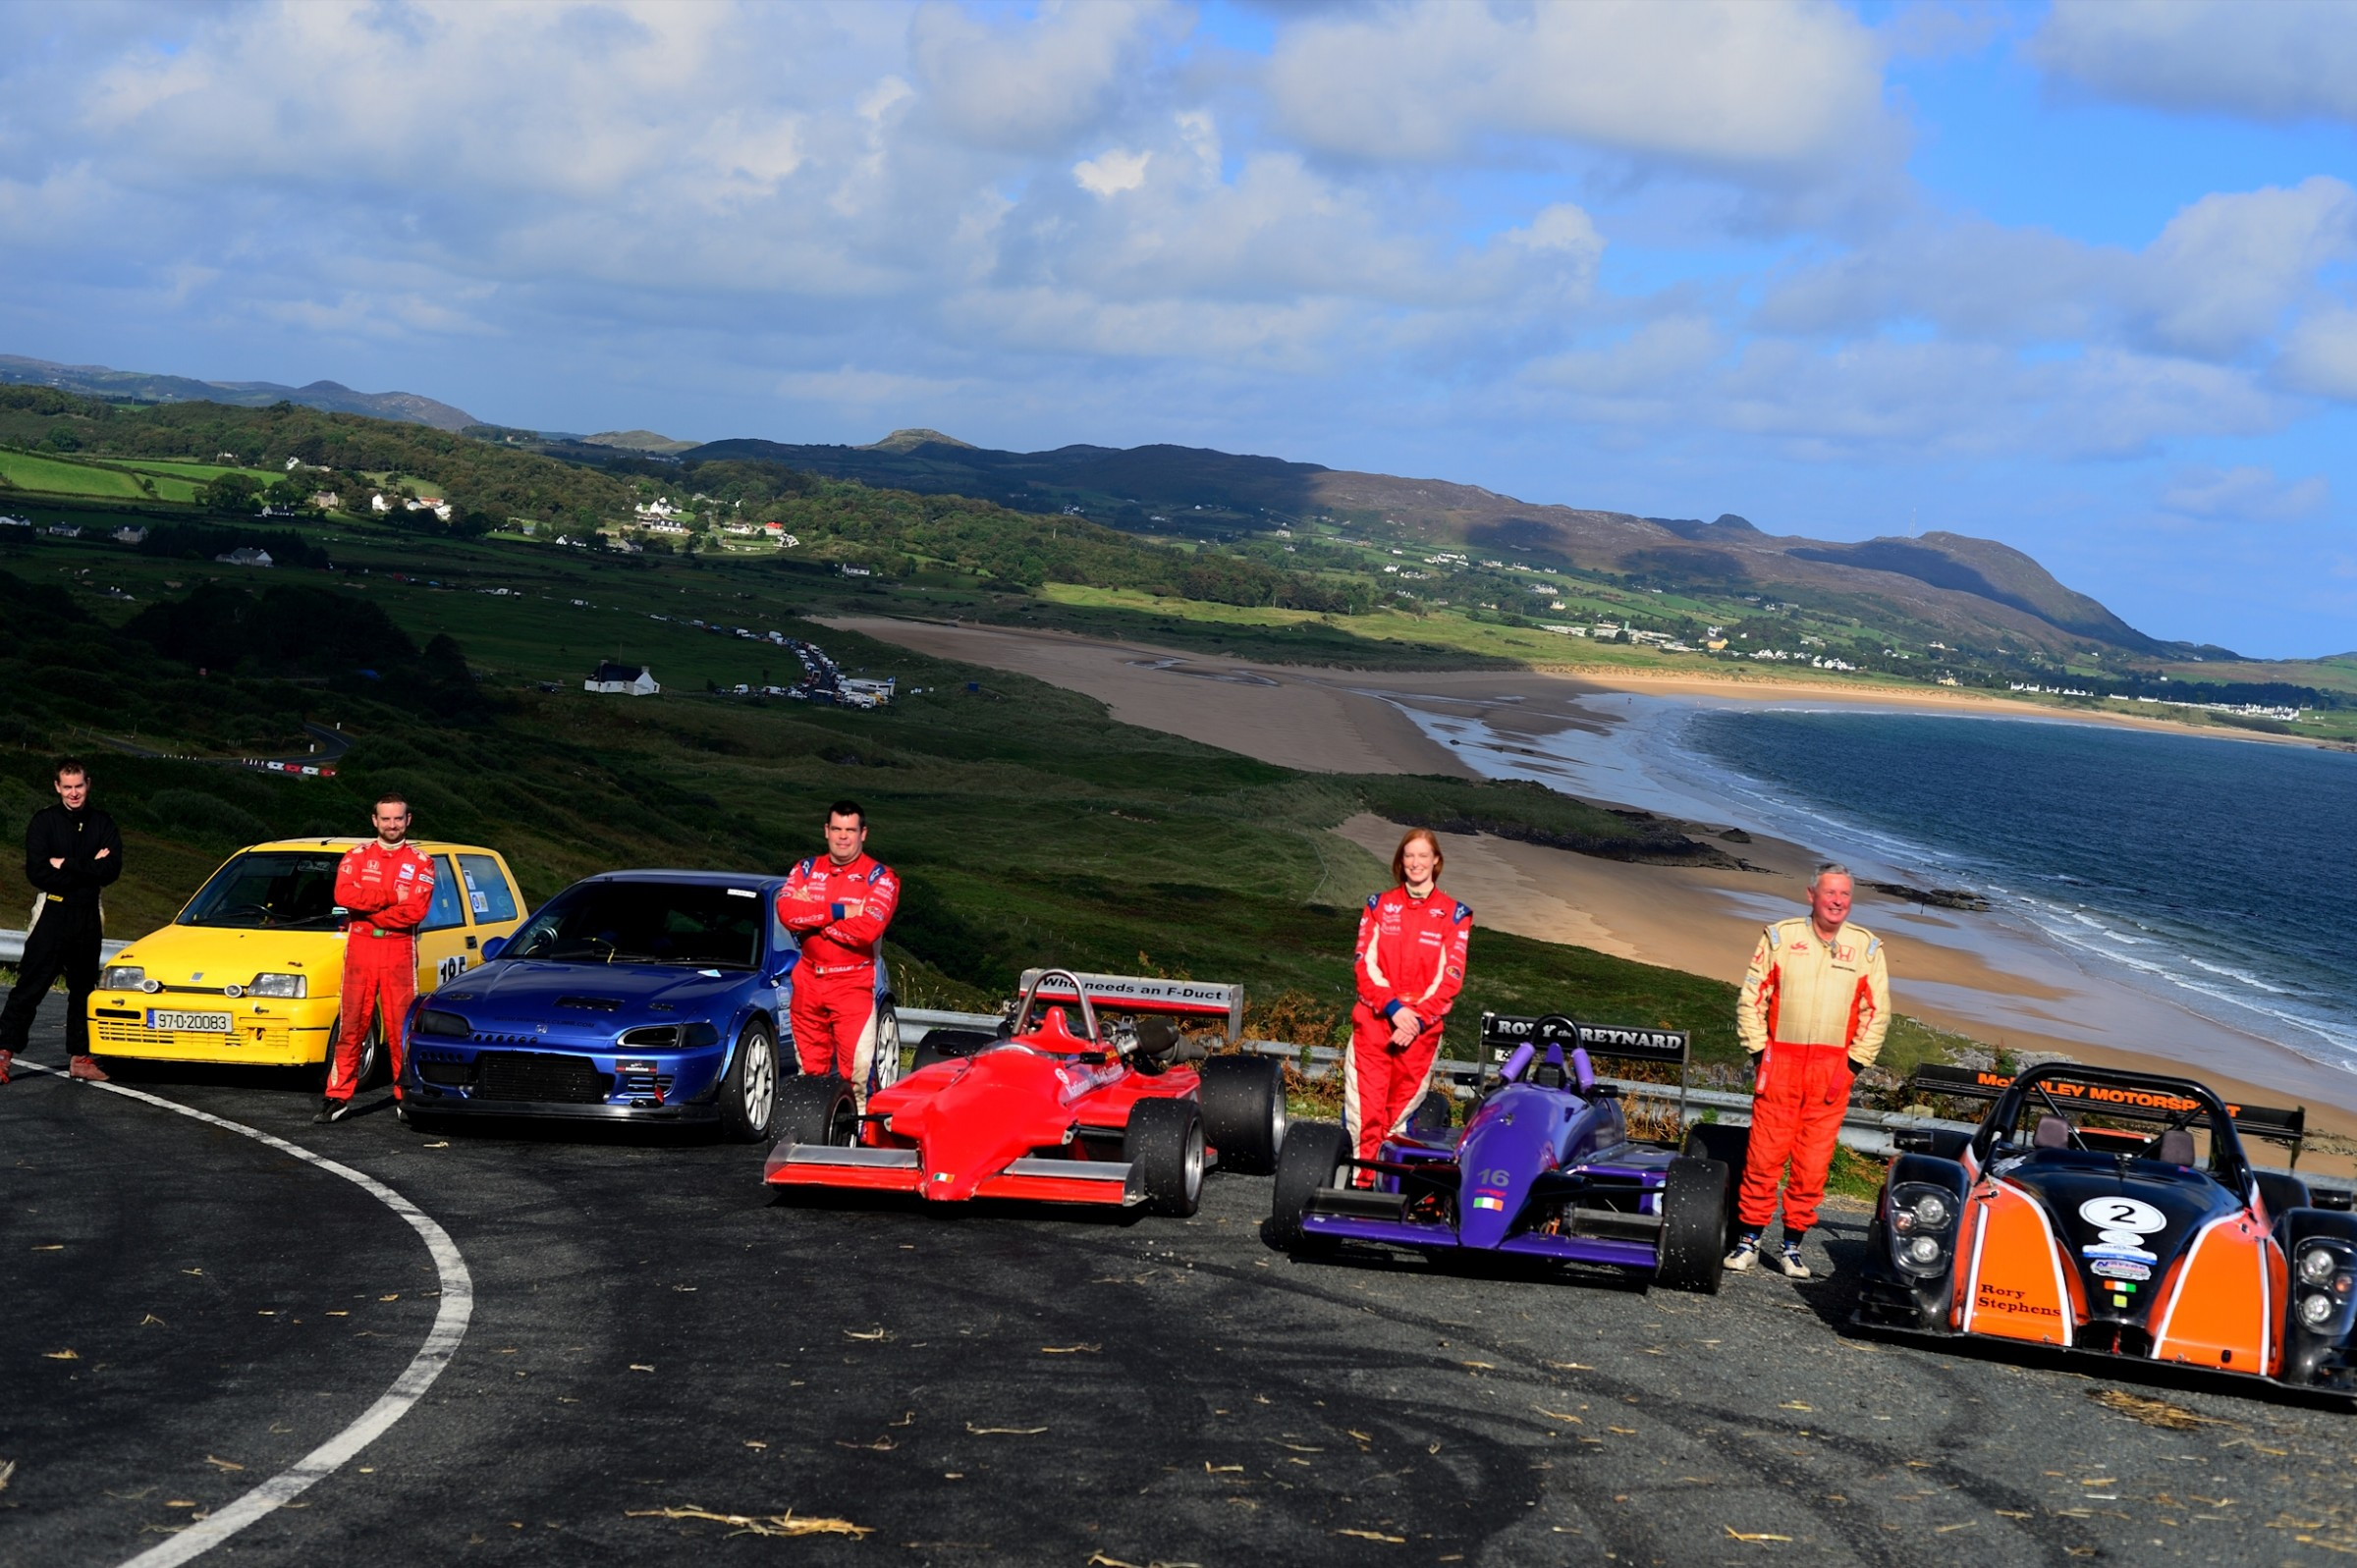 Cars For Sale Uk To Ireland: Irish Team Only One Of 22 Nations